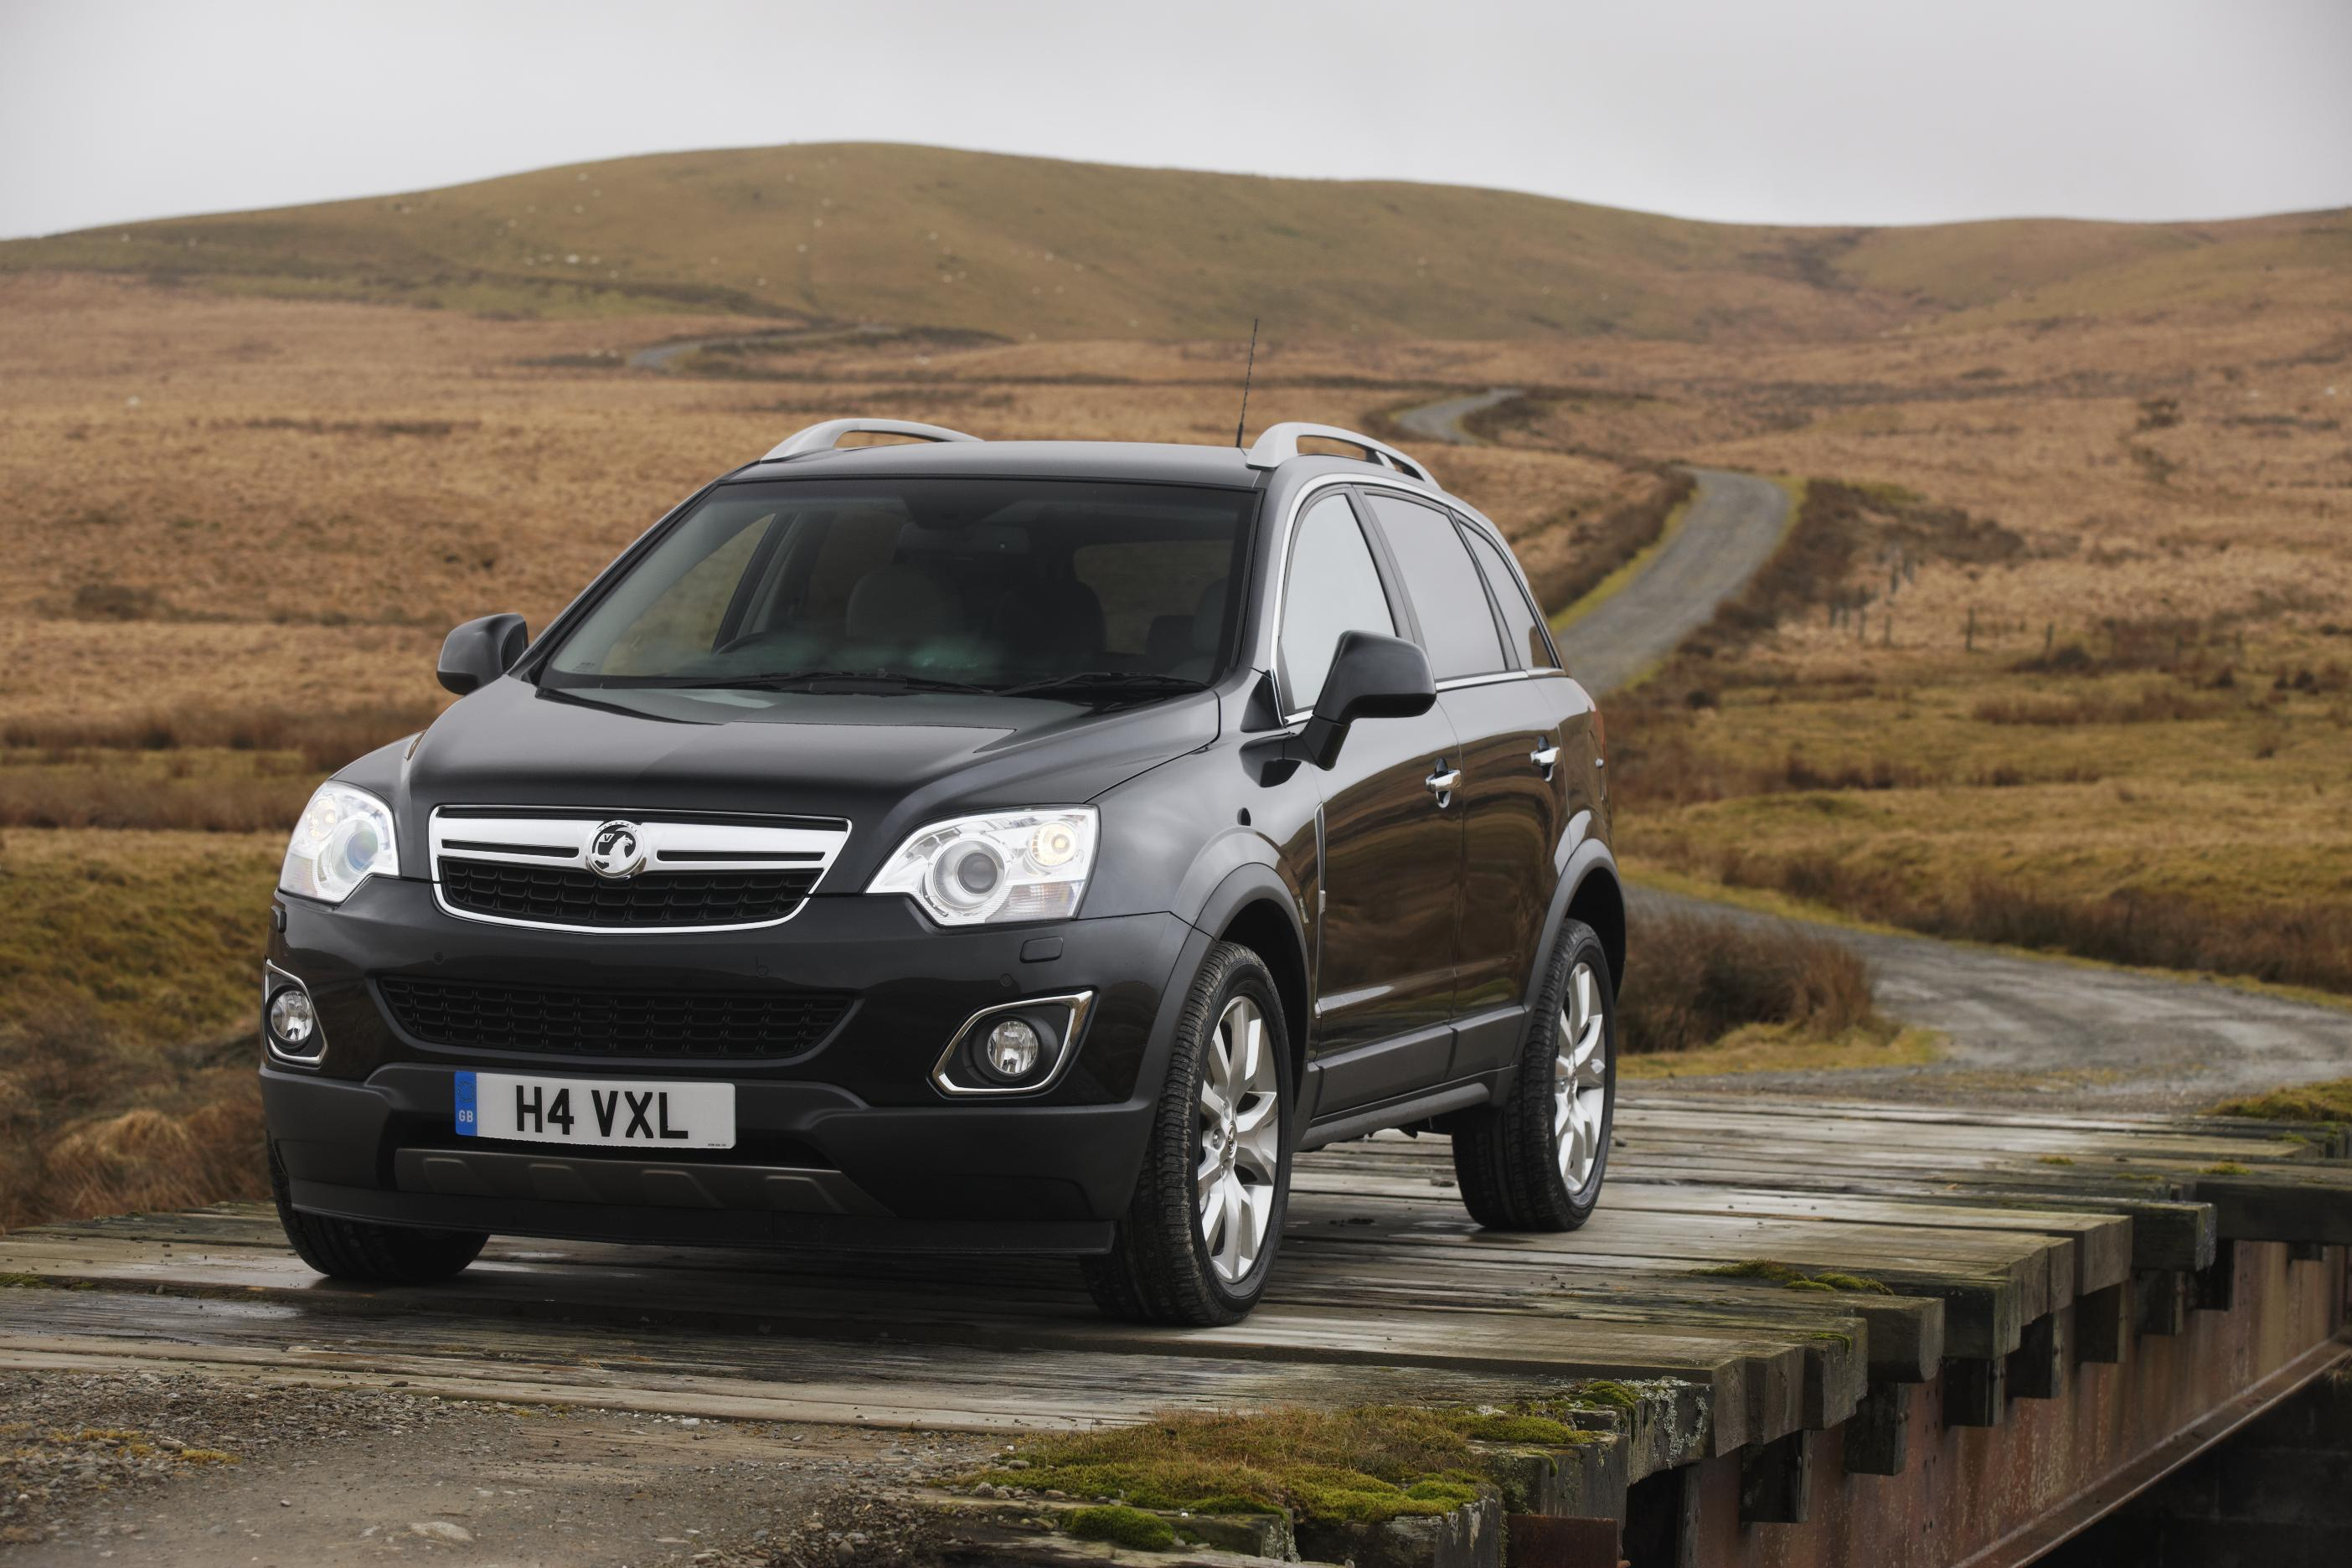 vauxhall antara review and buying guide best deals and prices buyacar. Black Bedroom Furniture Sets. Home Design Ideas